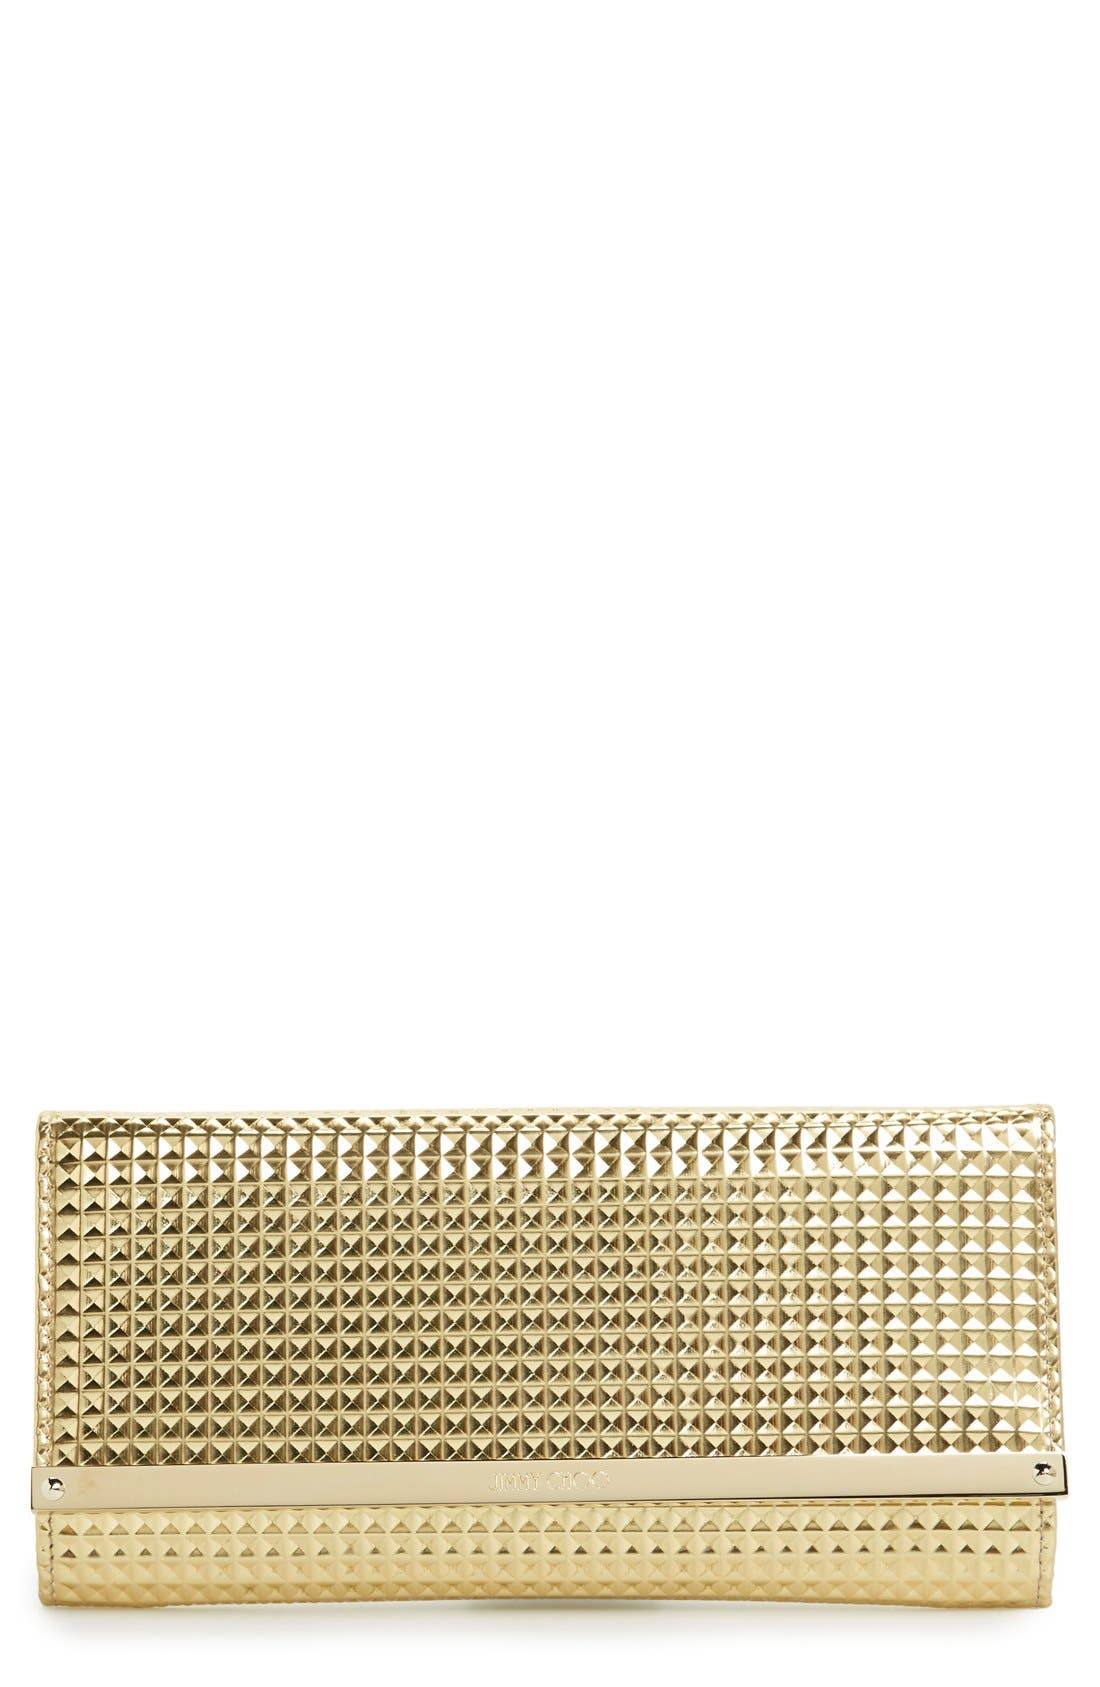 Main Image - Jimmy Choo 'Milla' Pyramid Embossed Metallic Leather Flap Clutch